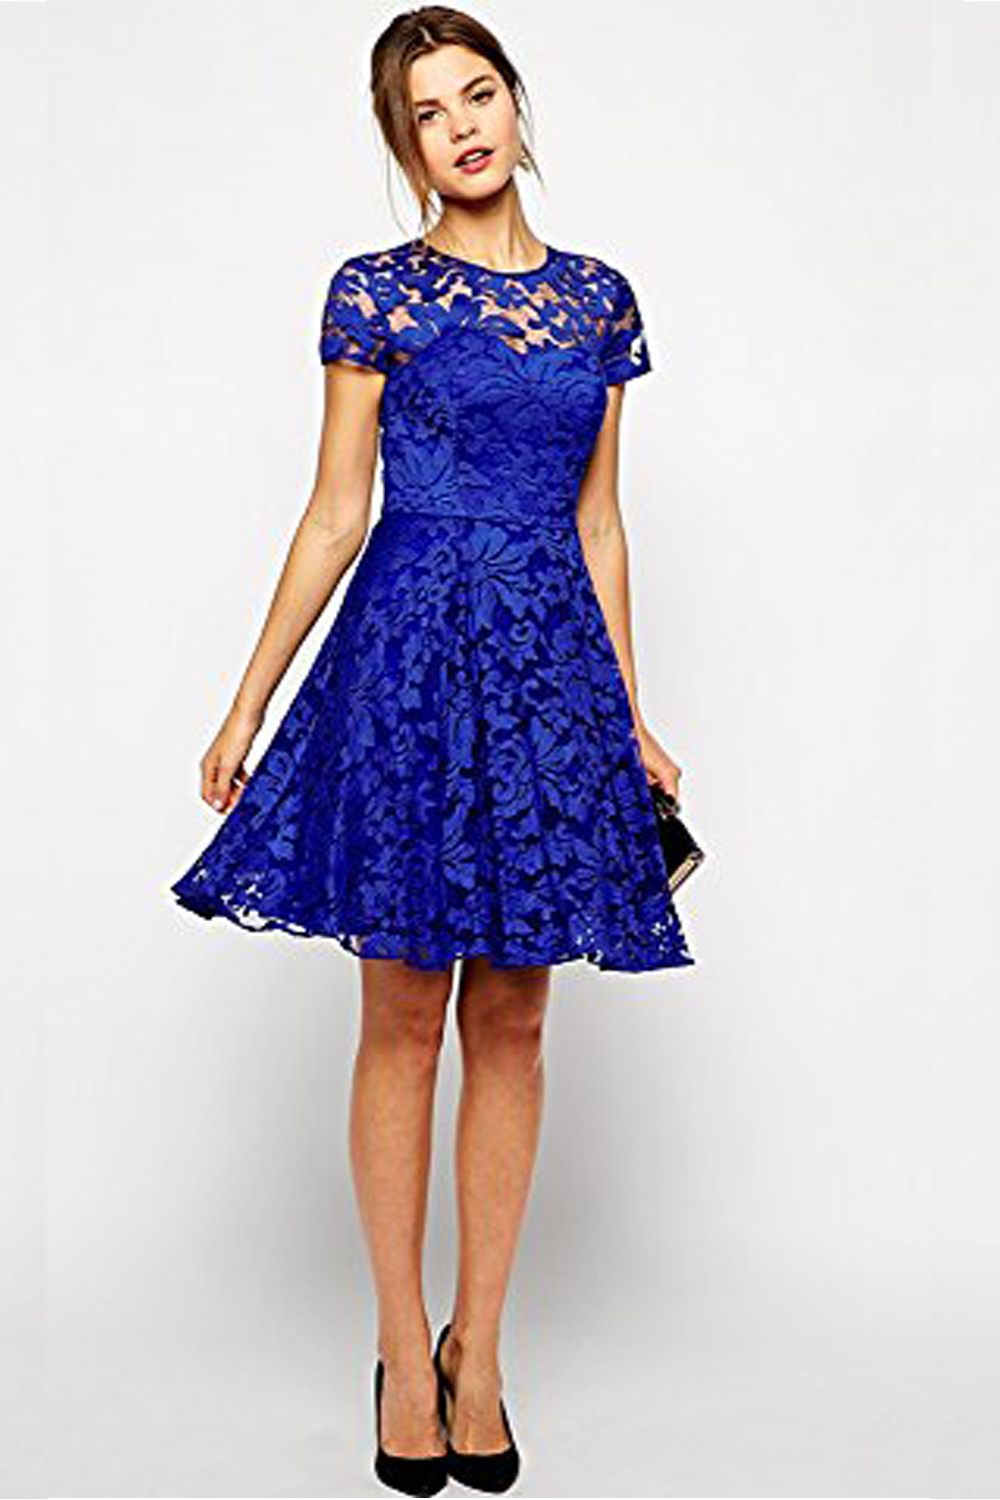 Blue Dresses: Be Brilliant in Blue. Move over Little Black Dress, we are feeling the Blues. Spend your day relaxing in a sweet sky blue sundress and your night out with friends, feeling confident in a vibrant cobalt cocktail number.